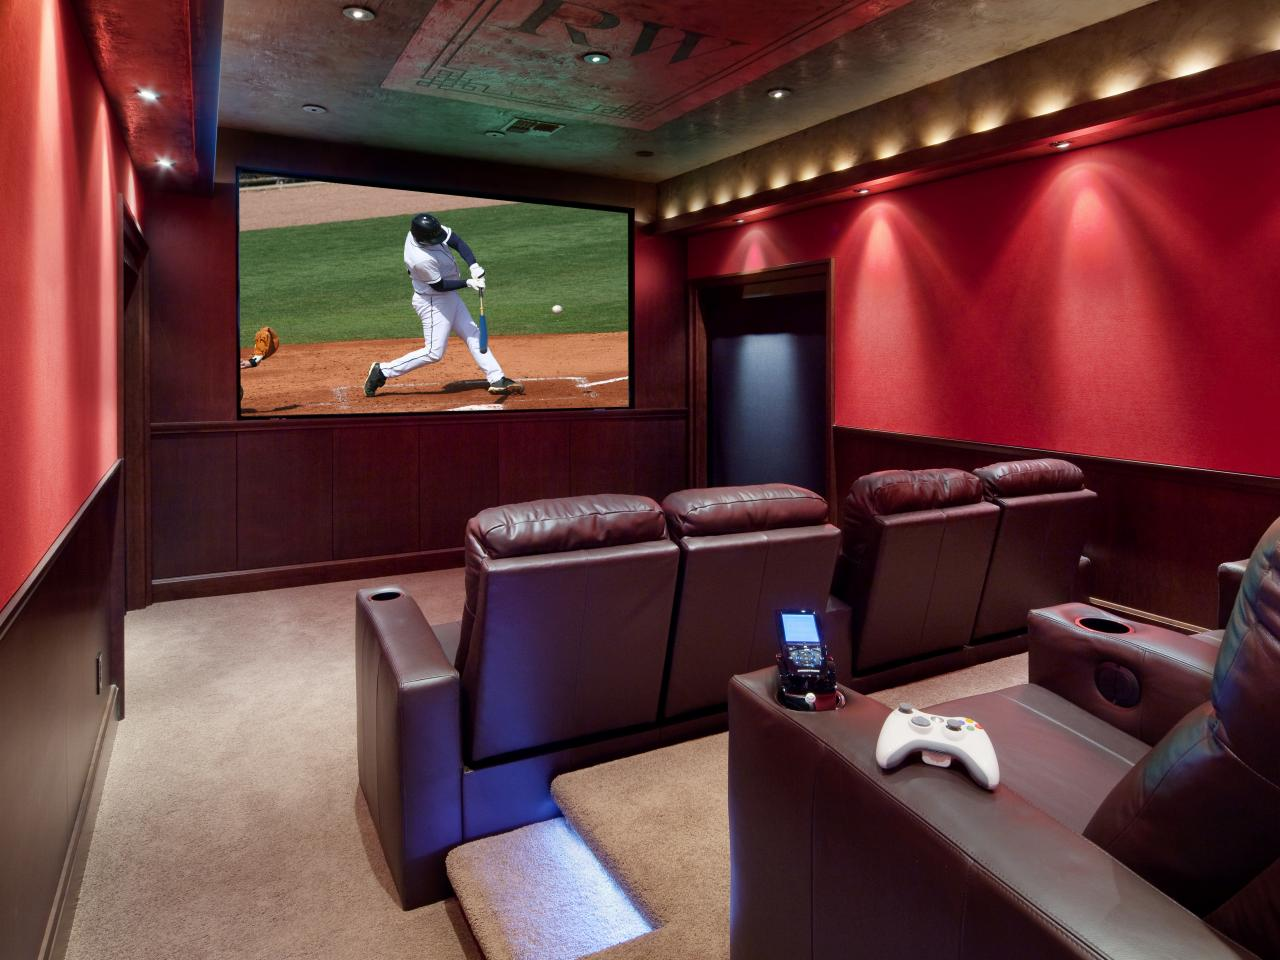 Home theater design ideas pictures tips options hgtv - Home cinema design ideas ...